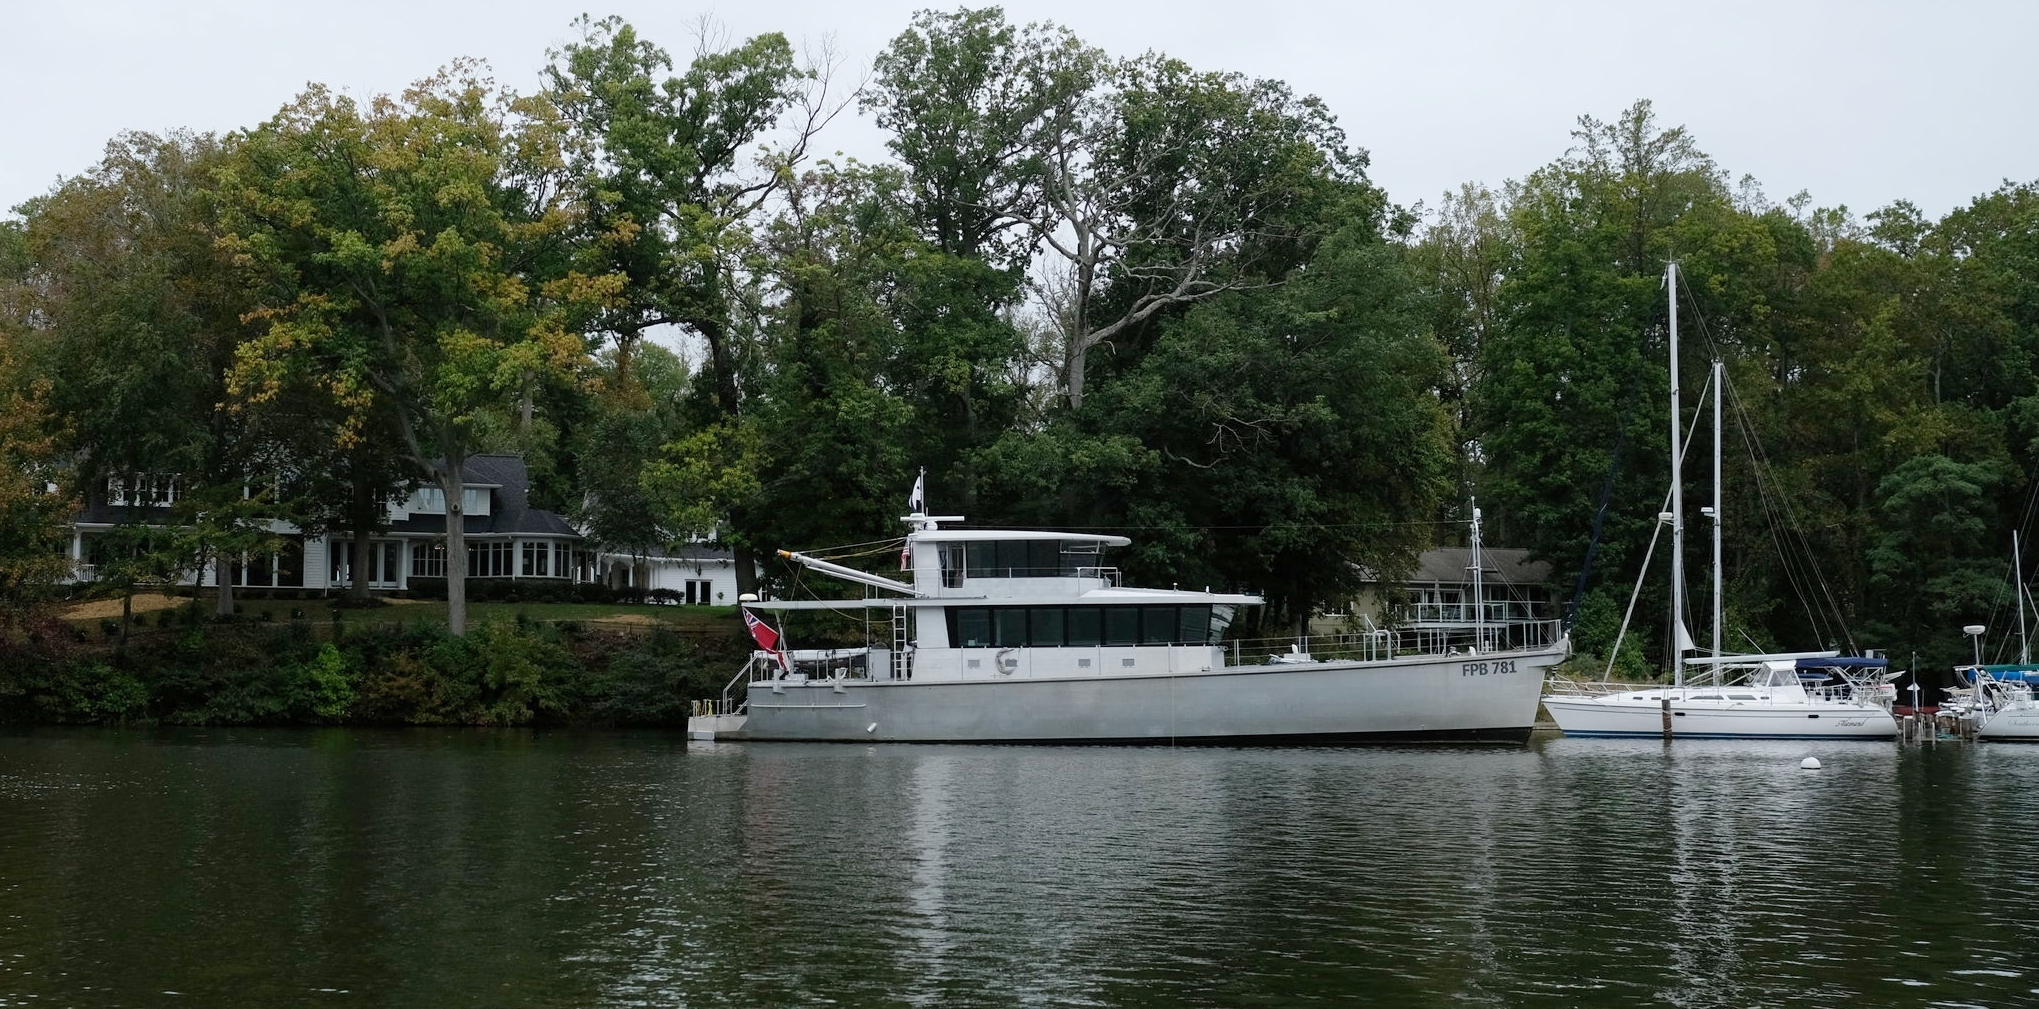 The distinctive profile is intentionally similar to a military or commercial vessel, downplaying the yachting characteristics of a world cruiser.